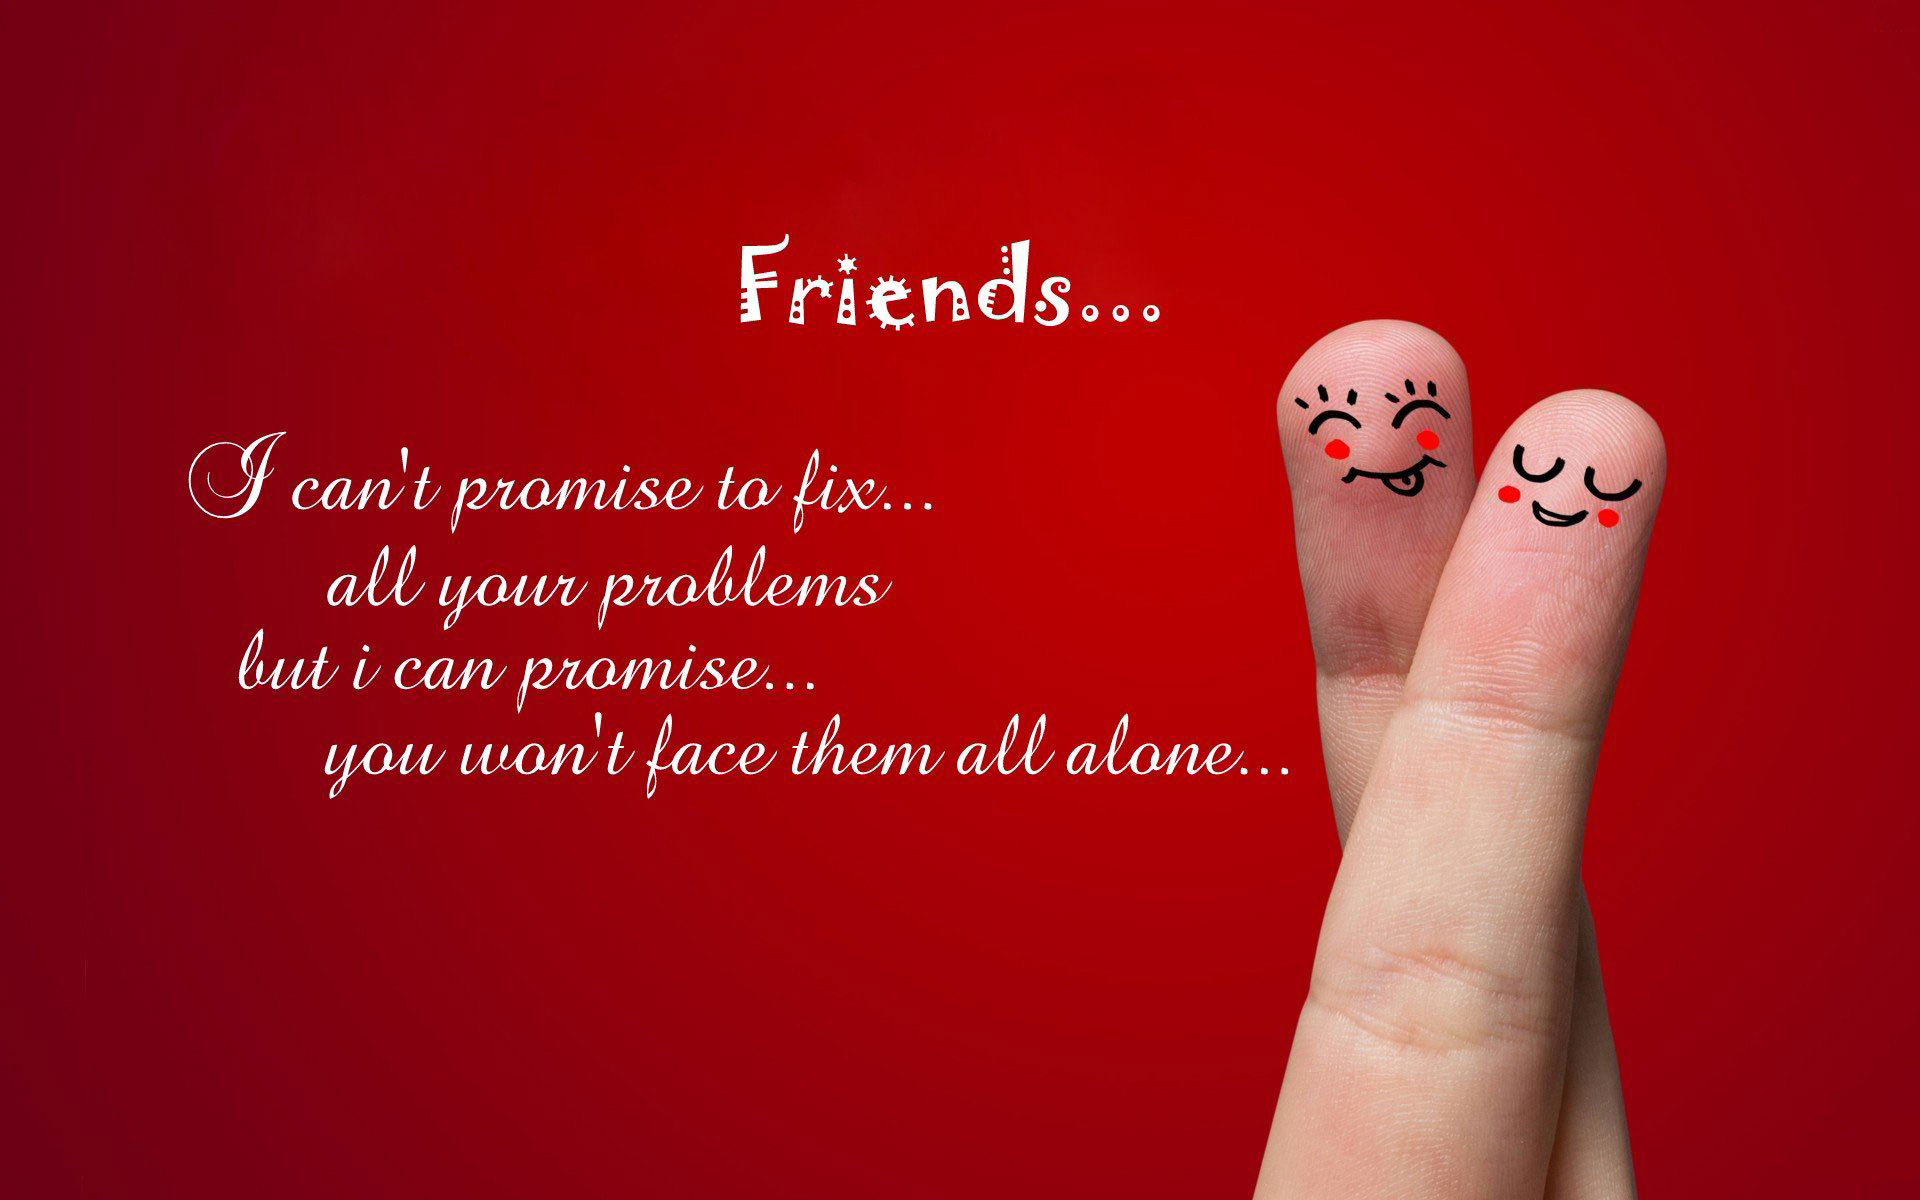 Friendship Quotes You Can Text : Cute friendship quotes with images